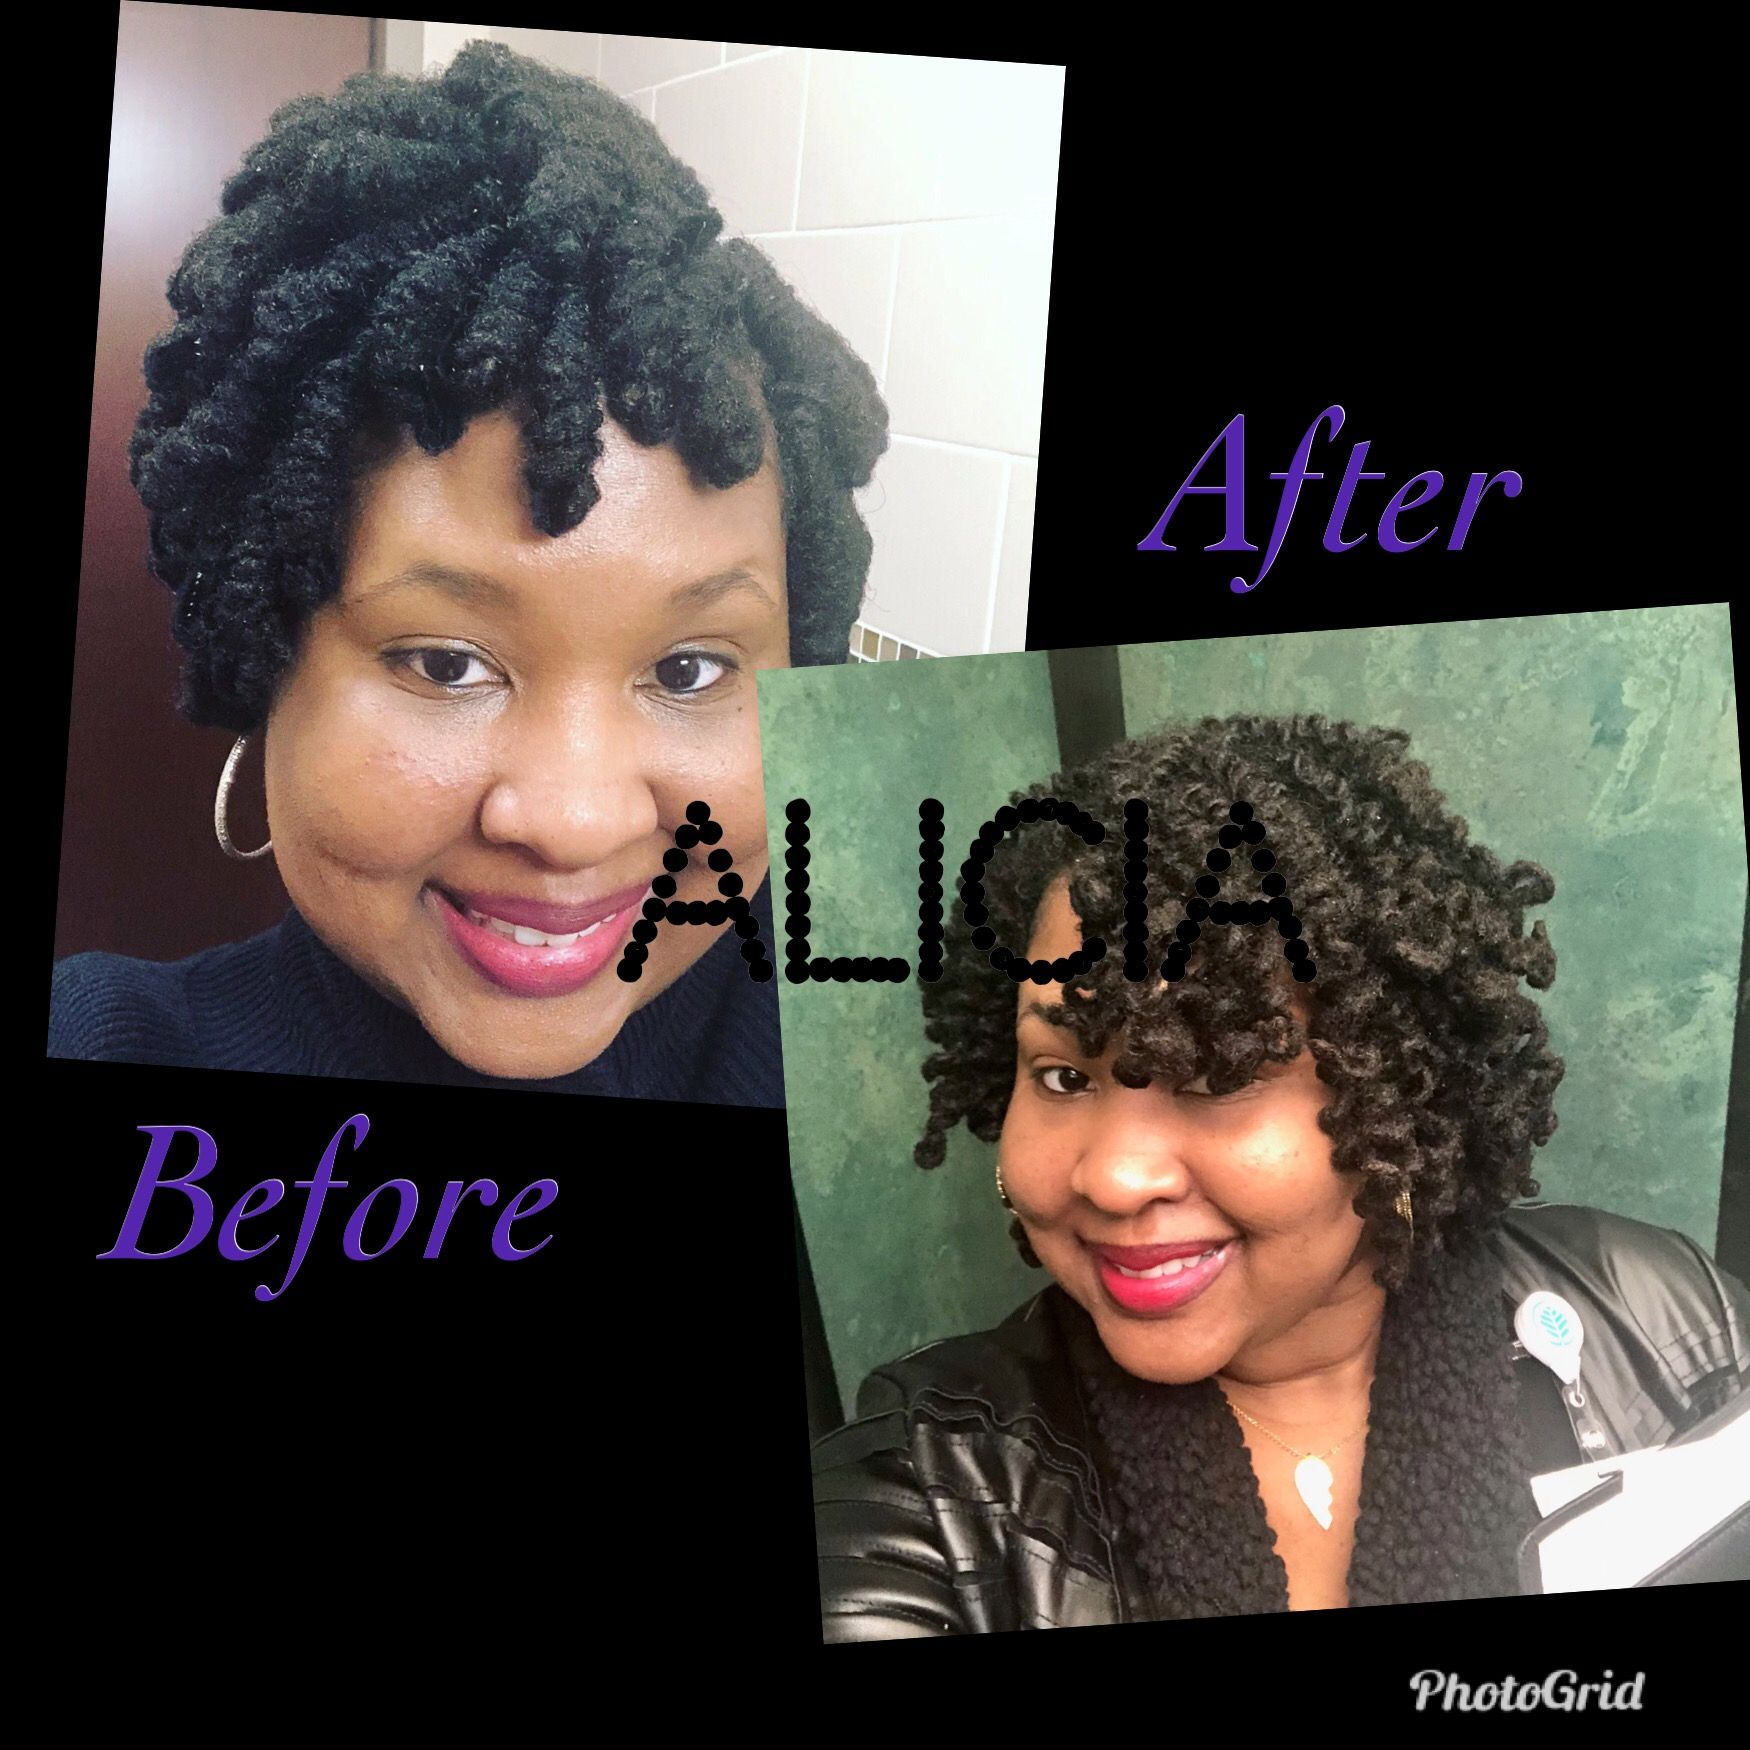 Pipecleaners Curls Curlsforthegirls Curlscurlscurls Curlsfordays Curlsfordays Locs Locsty Natural Hair Stylists Curls For The Girls Natural Hair Styles